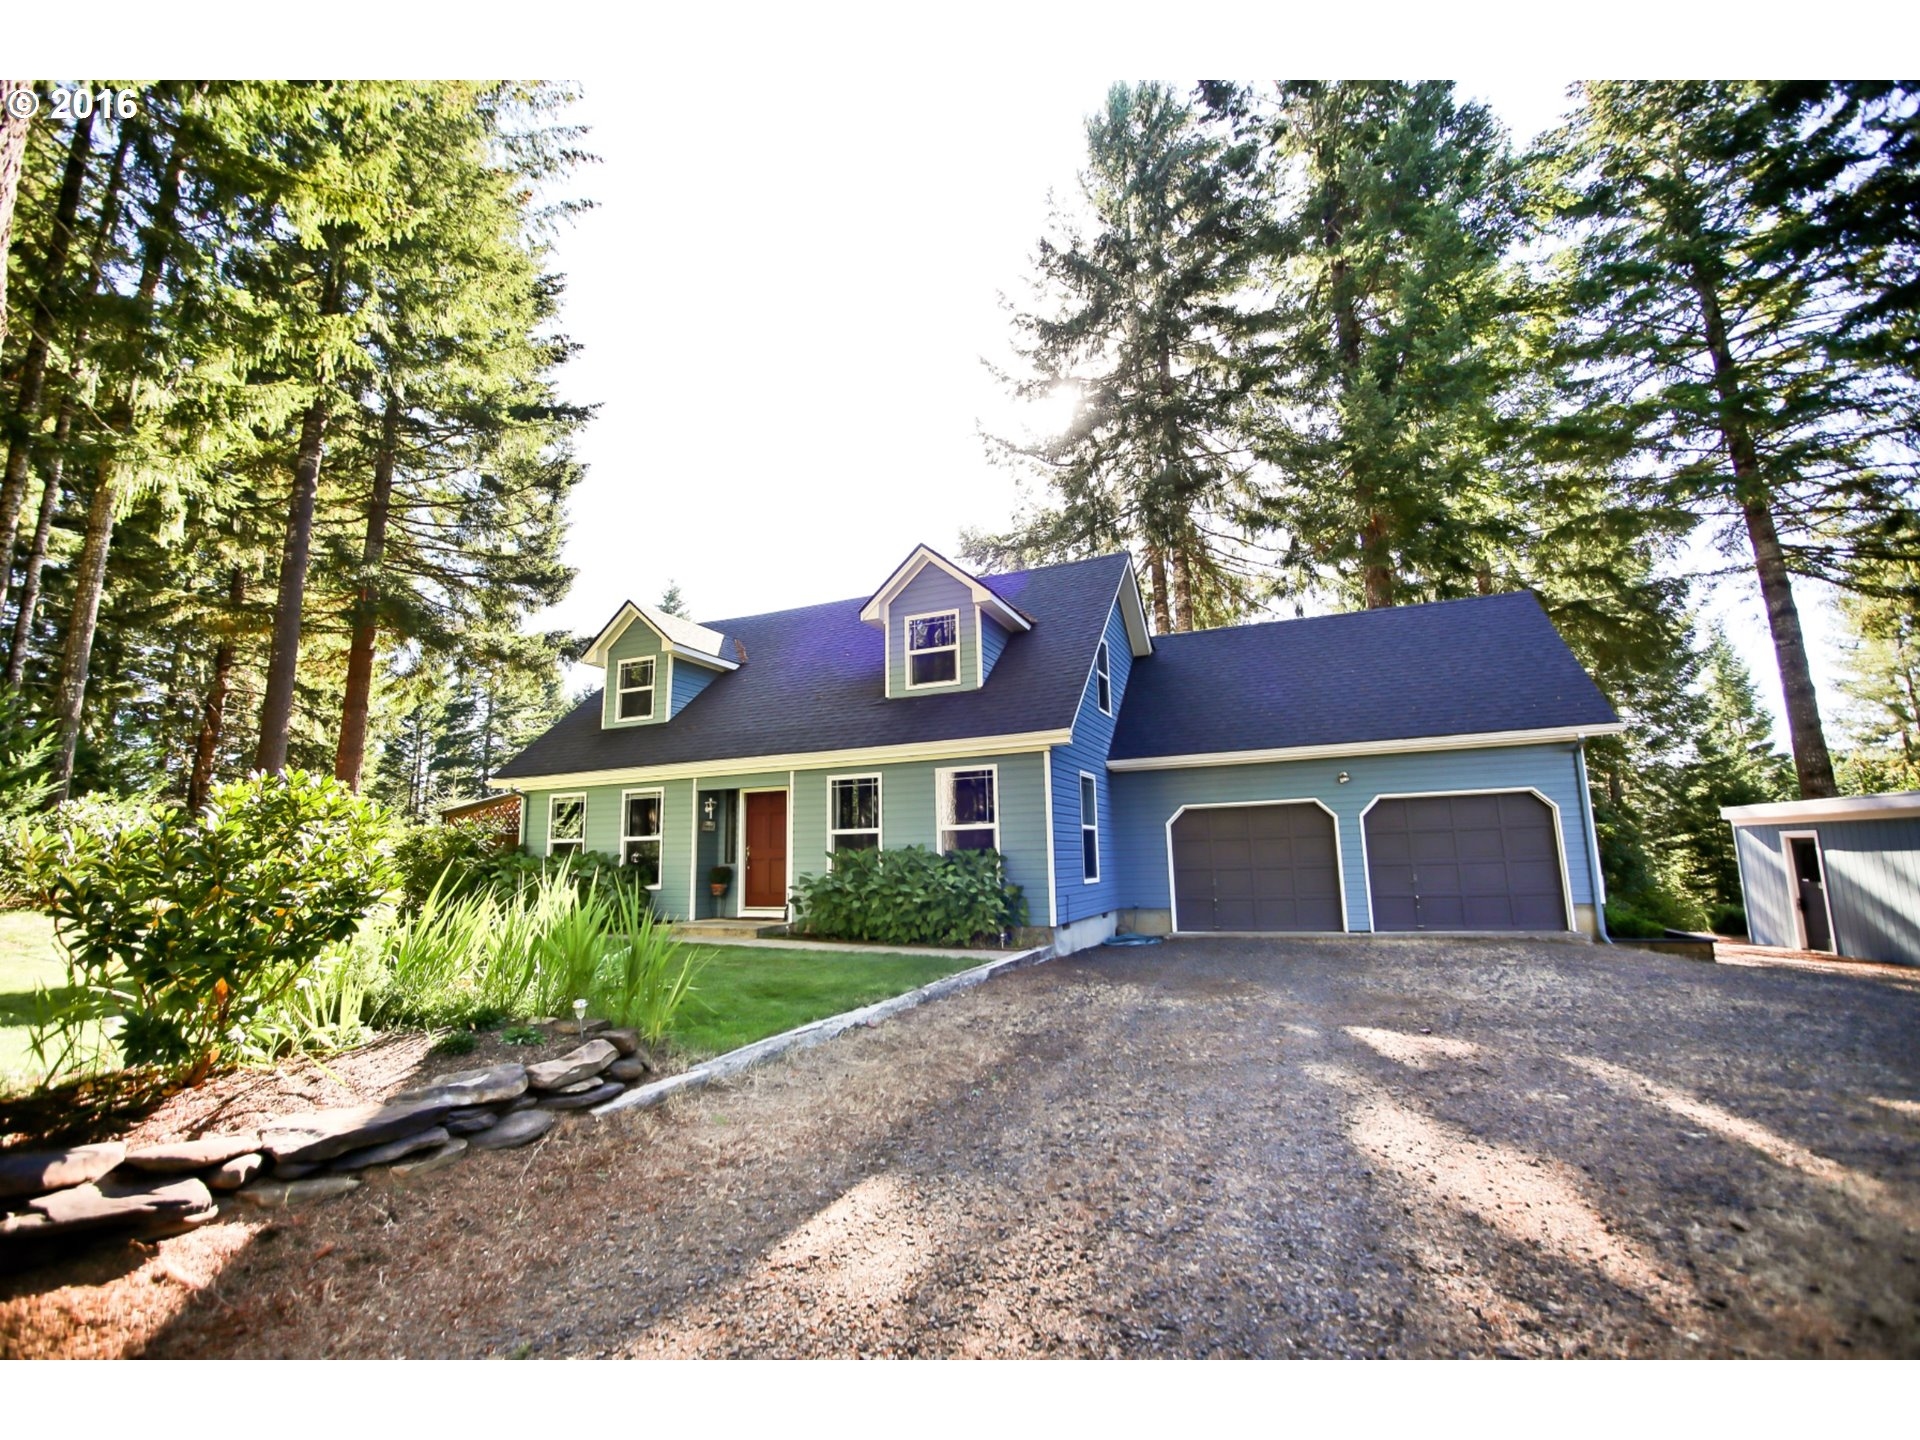 22714 williams way noti or 97461 us eugene home for sale